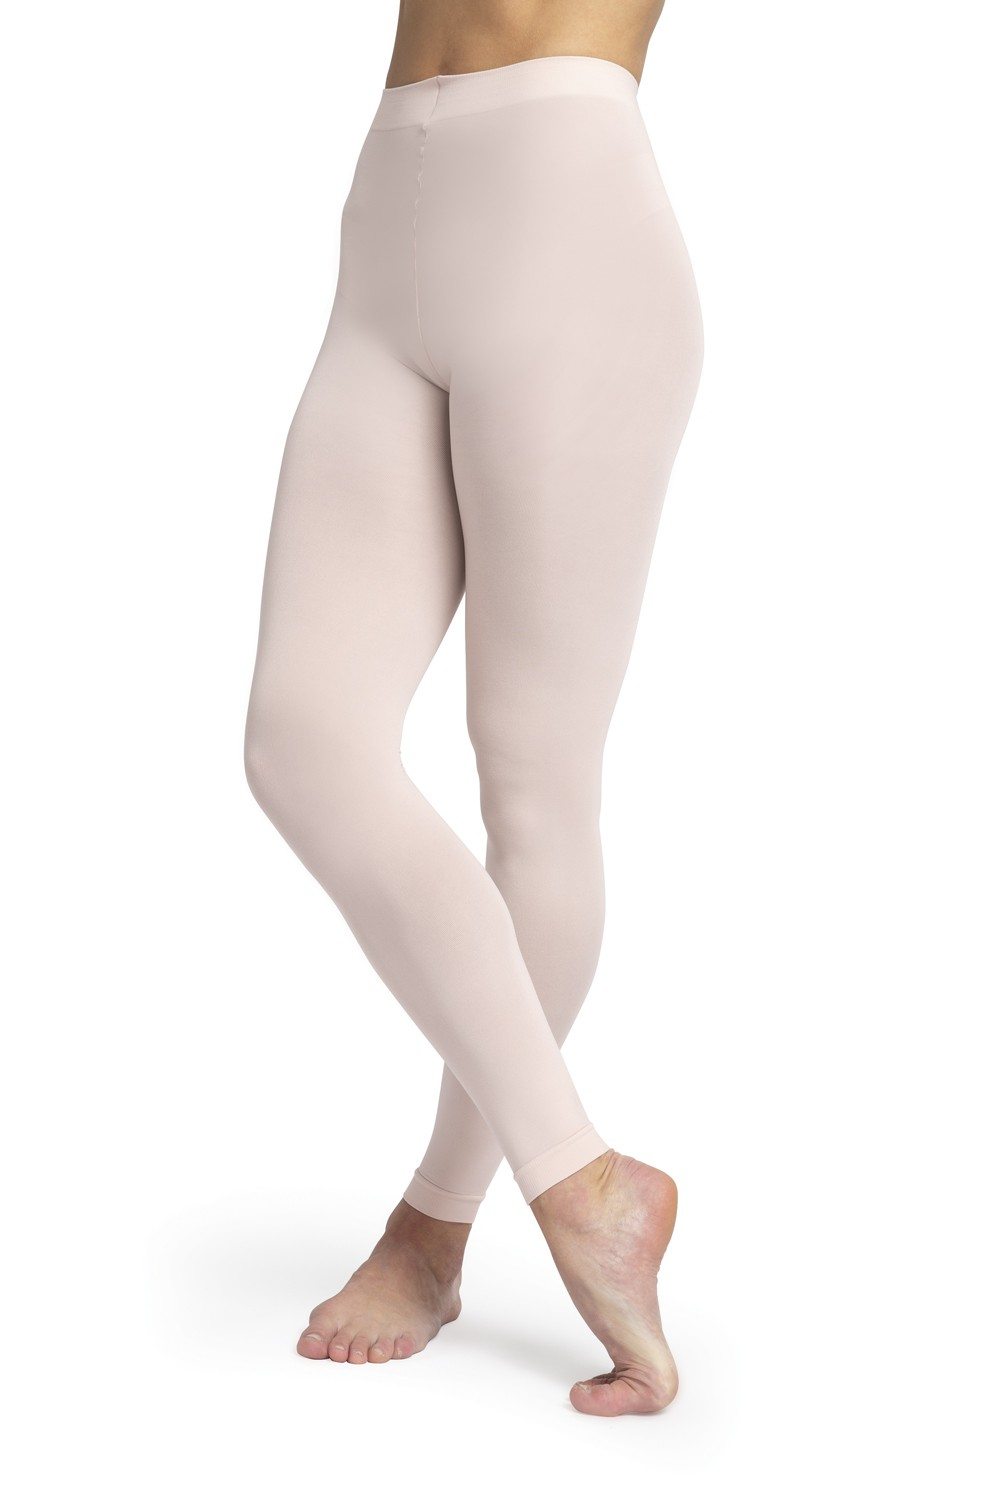 9eda68158dc42 Ladies' Contoursoft Footless Tights Women's Dance Tights